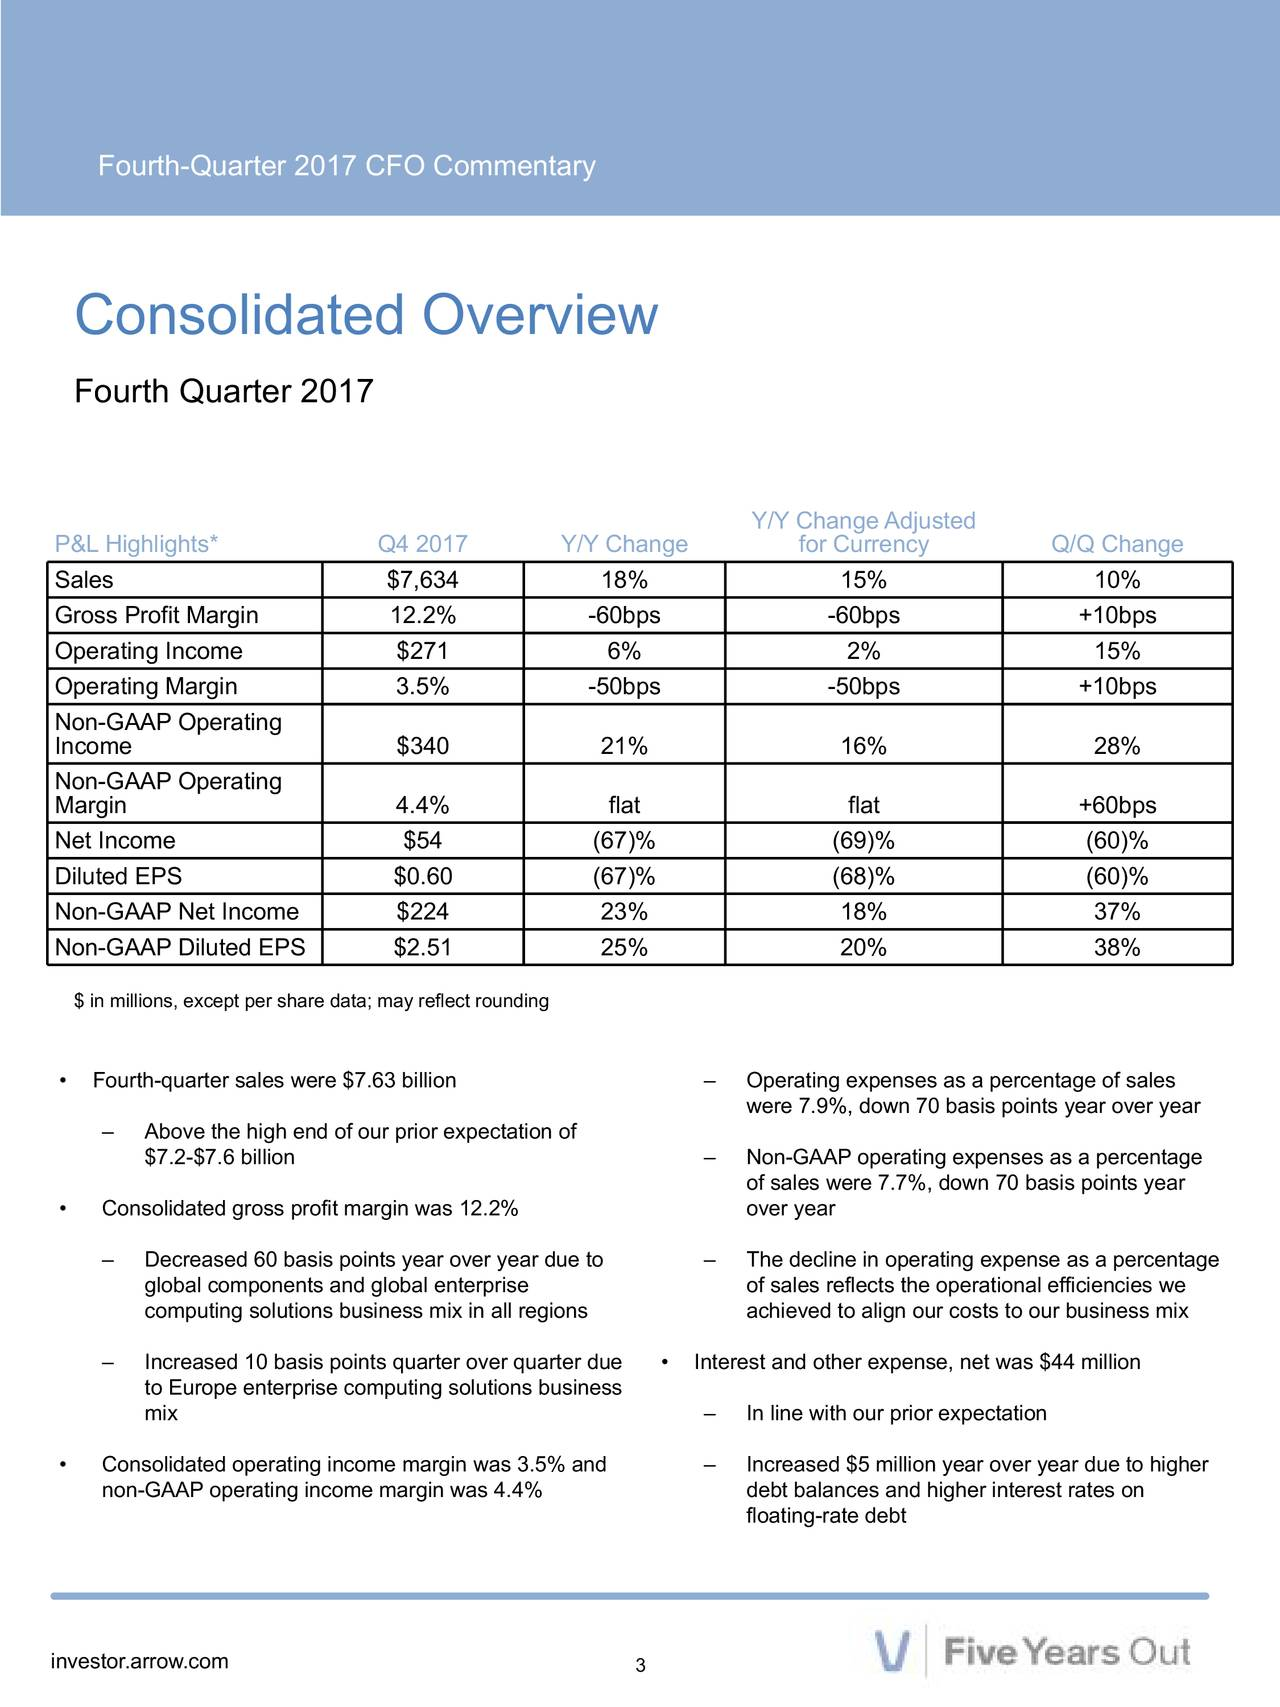 Consolidated Overview Fourth Quarter 2017 Y/Y Change Adjusted P&L Highlights* Q4 2017 Y/Y Change for Currency Q/Q Change Sales $7,634 18% 15% 10% Gross Profit Margin 12.2% -60bps -60bps +10bps Operating Income $271 6% 2% 15% Operating Margin 3.5% -50bps -50bps +10bps Non-GAAP Operating Income $340 21% 16% 28% Non-GAAP Operating Margin 4.4% flat flat +60bps Net Income $54 (67)% (69)% (60)% Diluted EPS $0.60 (67)% (68)% (60)% Non-GAAP Net Income $224 23% 18% 37% Non-GAAP Diluted EPS $2.51 25% 20% 38% $ in millions, except per share data; may reflect rounding • Fourth-quarter sales were $7.63 billion – Operating expenses as a percentage of sales were 7.9%, down 70 basis points year over year – Above the high end of our prior expectation of $7.2-$7.6 billion – Non-GAAP operating expenses as a percentage of sales were 7.7%, down 70 basis points year • Consolidated gross profit margin was 12.2% over year – Decreased 60 basis points year over year due to – The decline in operating expense as a percentage global components and global enterprise of sales reflects the operational efficiencies we computing solutions business mix in all regions achieved to align our costs to our business mix – Increased 10 basis points quarter over quarte• dInterest and other expense, net was $44 million to Europe enterprise computing solutions business mix – In line with our prior expectation • Consolidated operating income margin was 3.5% and – Increased $5 million year over year due to higher non-GAAP operating income margin was 4.4% debt balances and higher interest rates on floating-rate debt investor.arrow.com 3